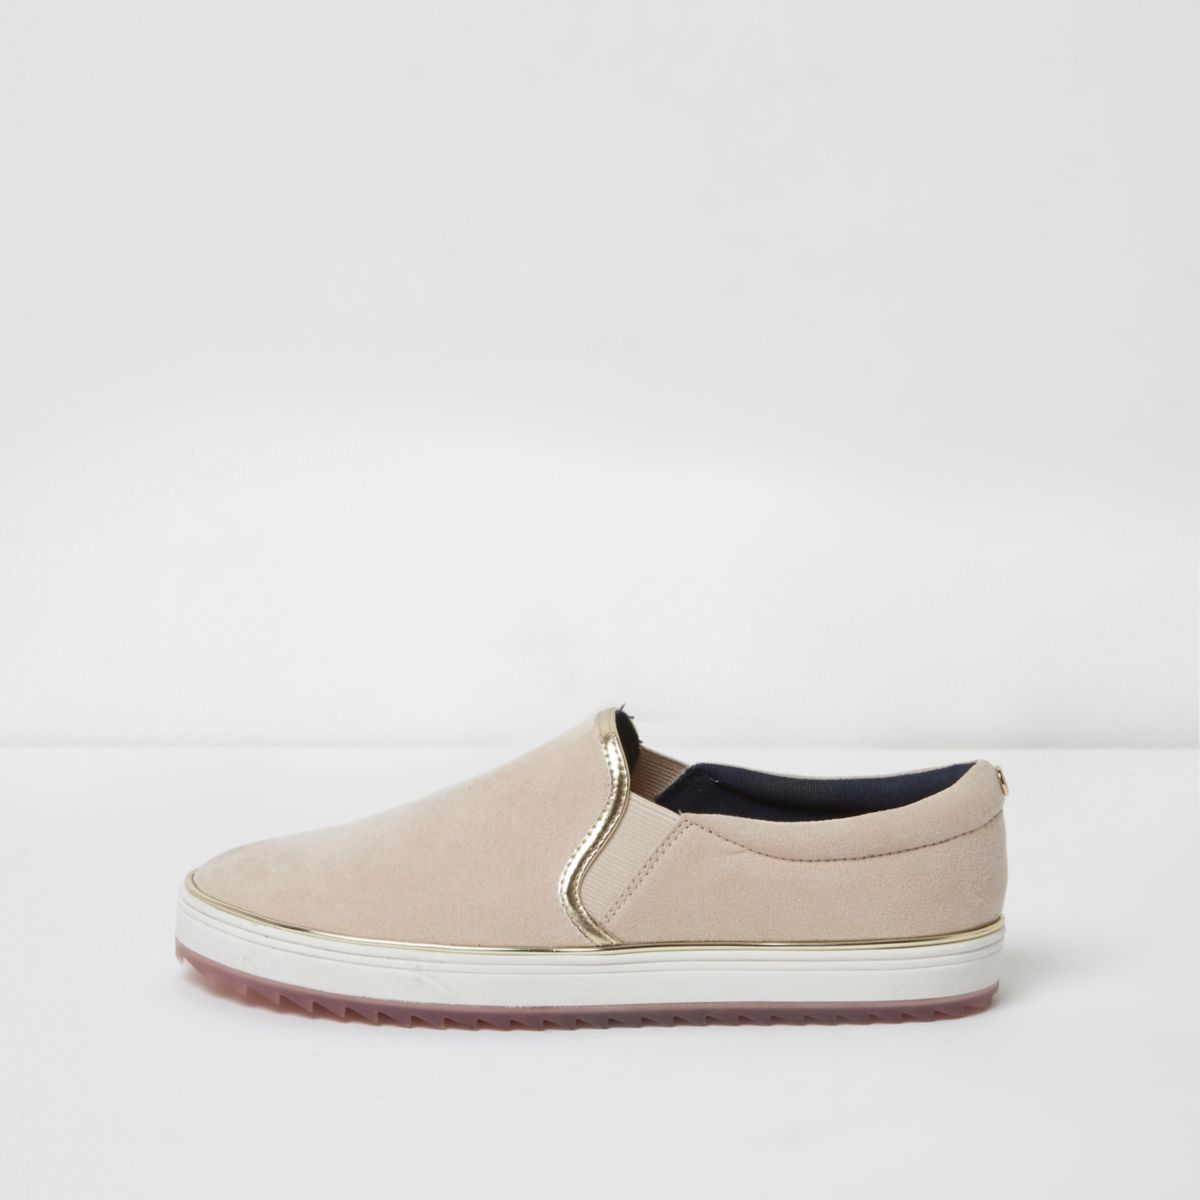 Womens Light Brown slip on plimsolls River Island